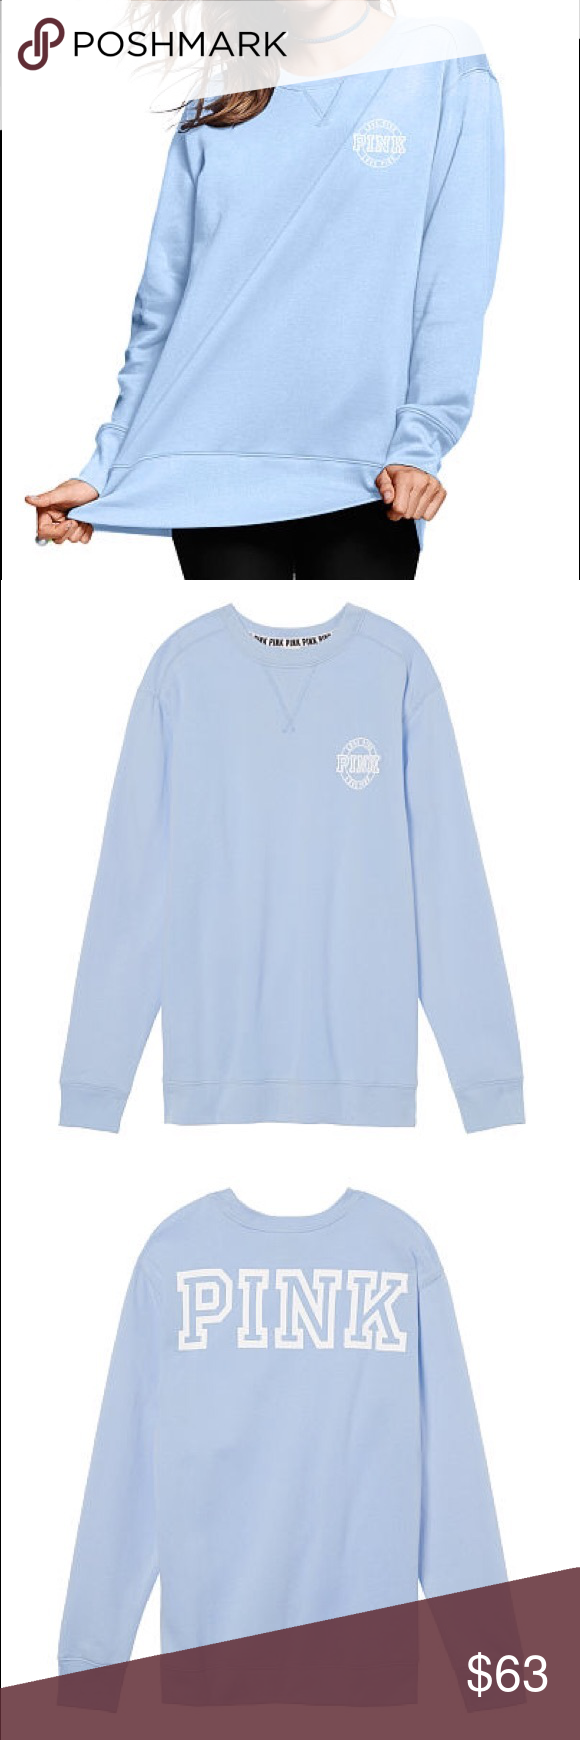 ac1d67bc9e Campus Crew Sweatshirt Size XS. Color is called